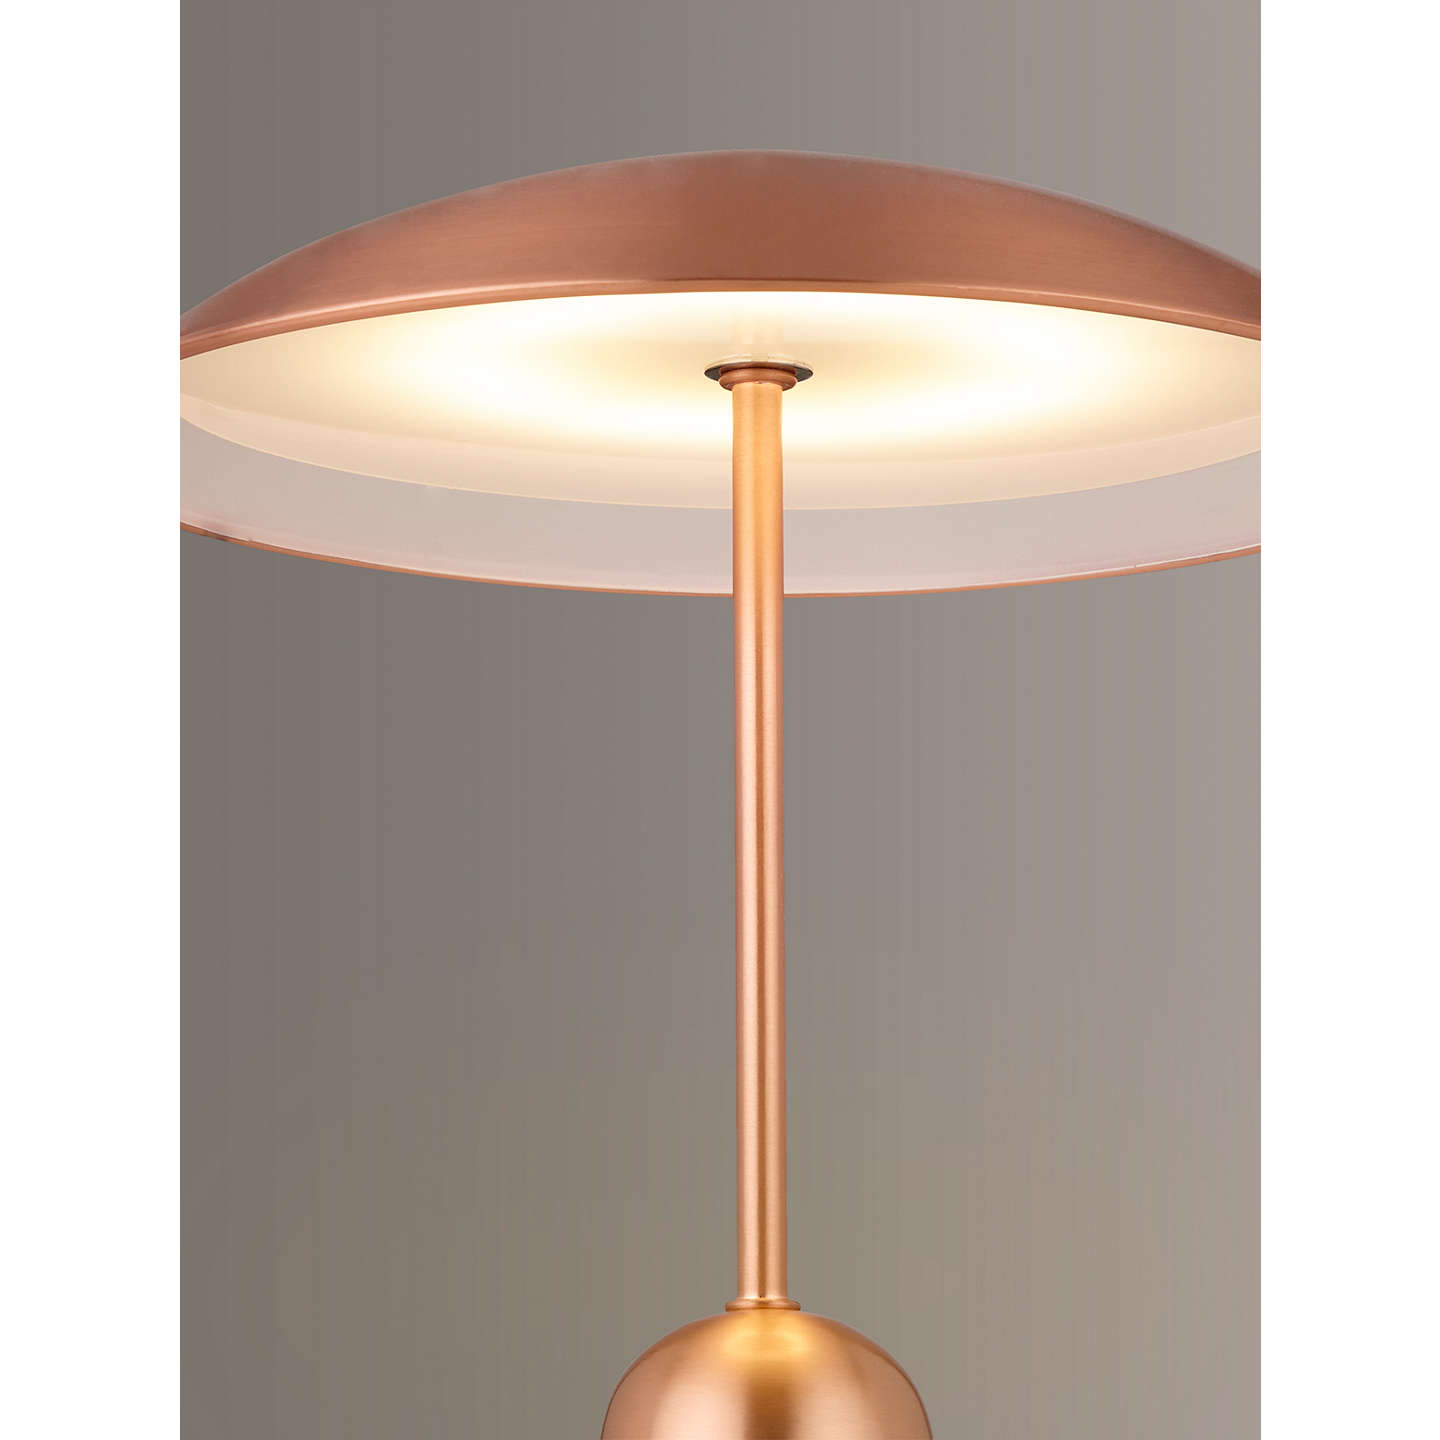 BuyDesign Project by John Lewis No.053 Table Lamp, Copper Online at johnlewis.com